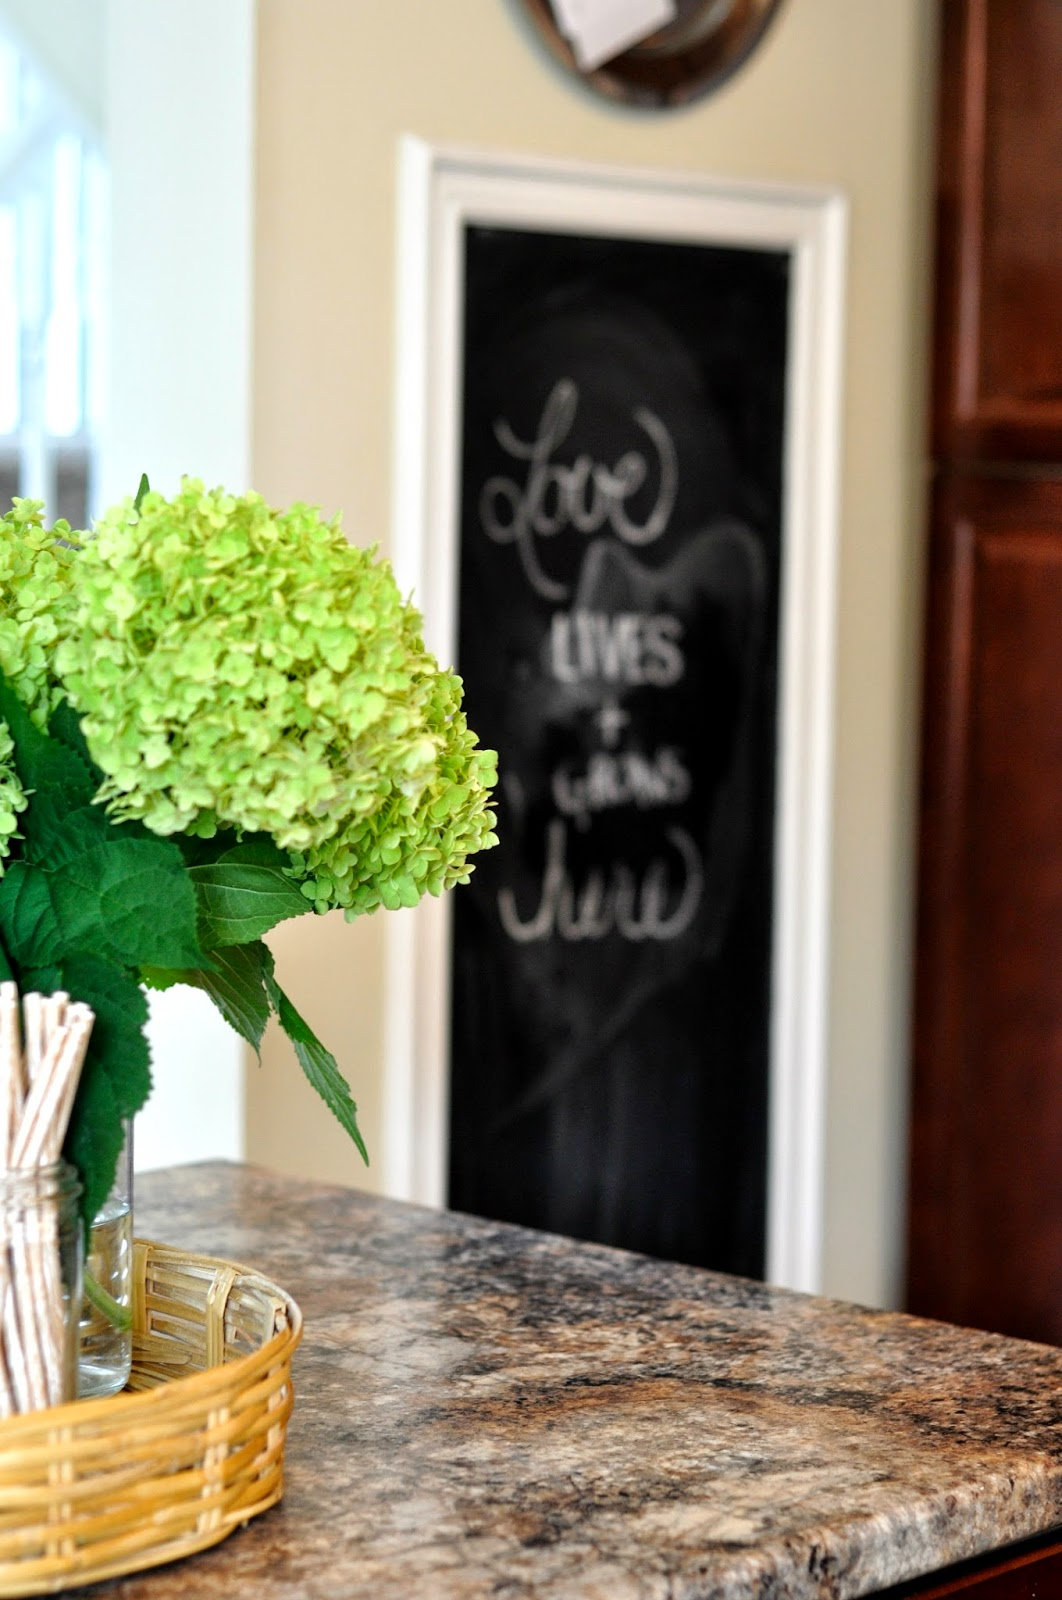 http://thislittleestate.blogspot.ca/2014/03/five-easy-chalkboard-projects.html